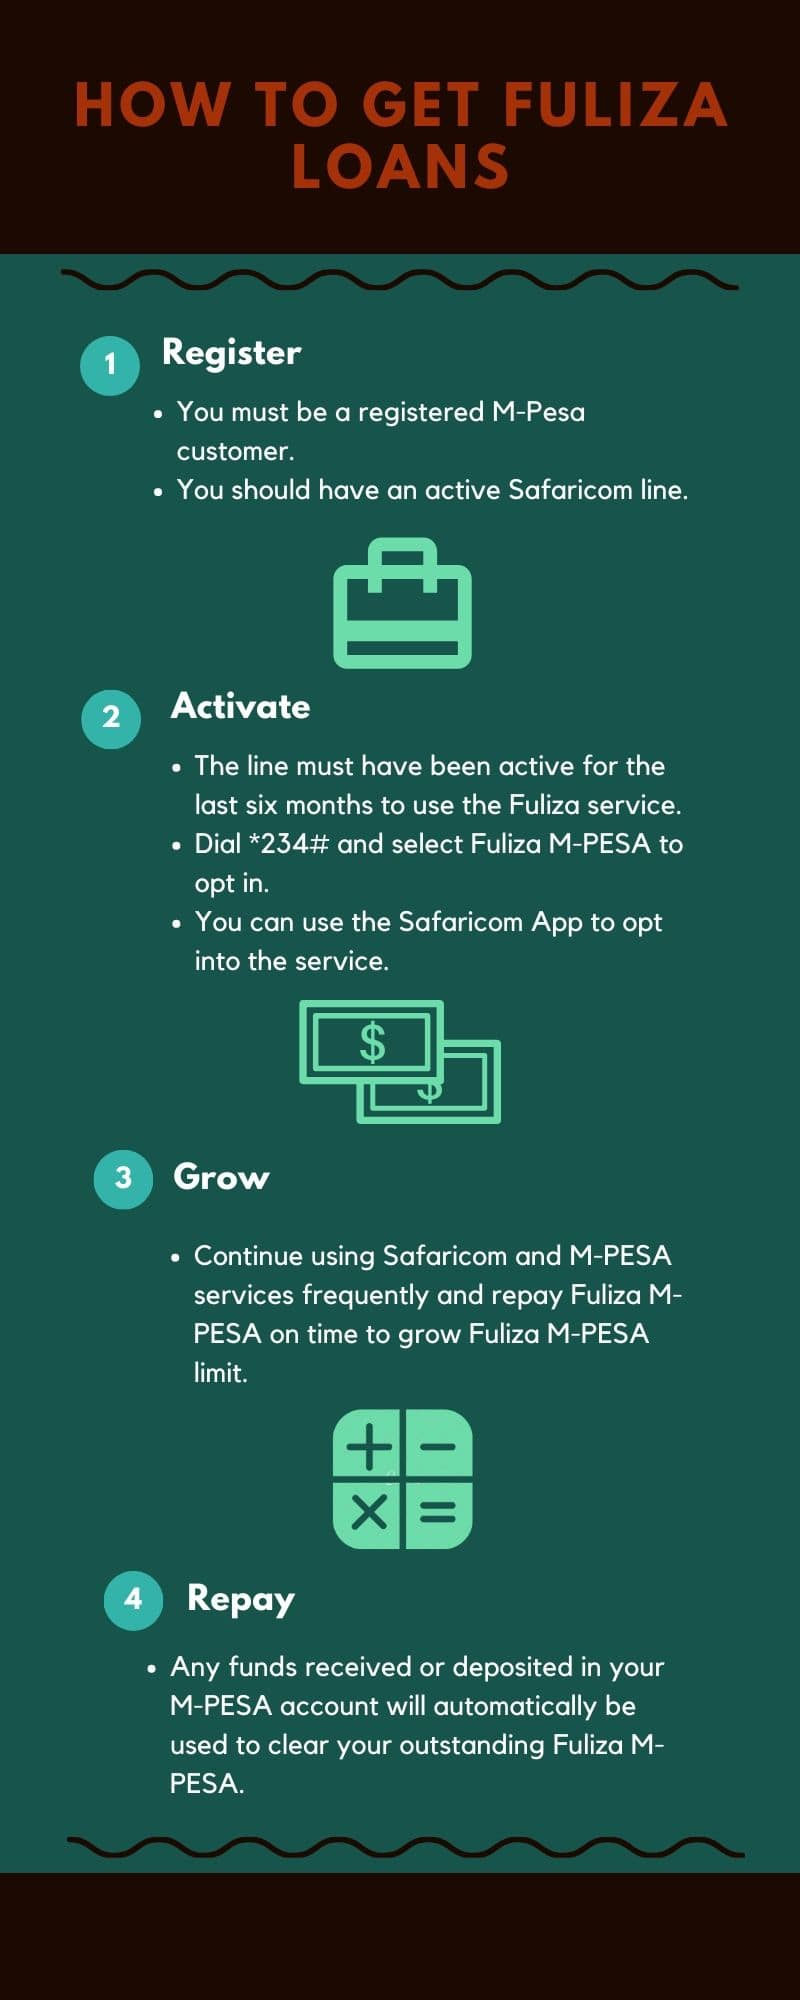 How to get Fuliza loans